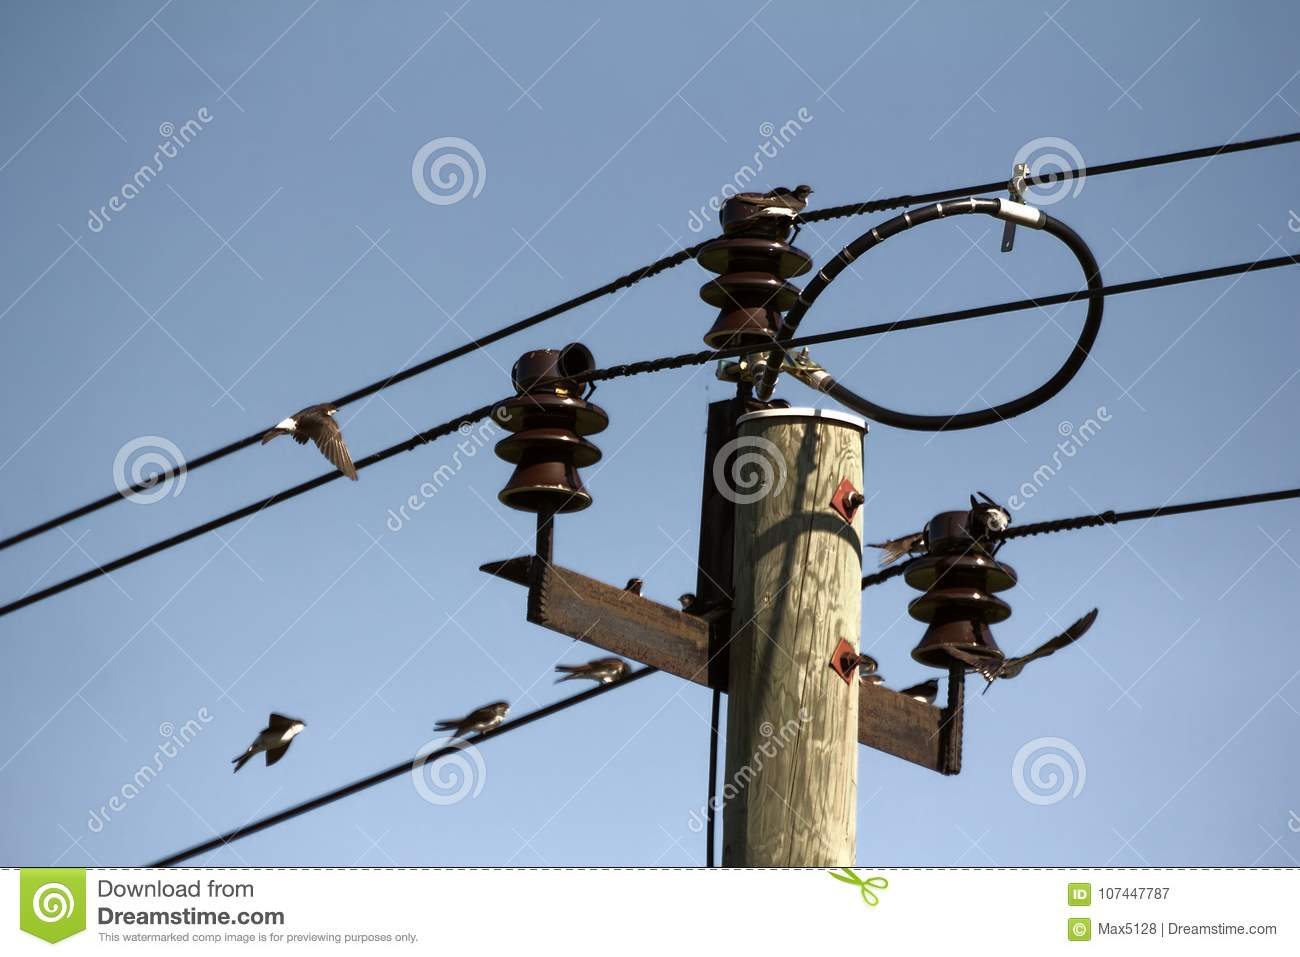 House Martins on wires stock image. Image of habitat - 107447787